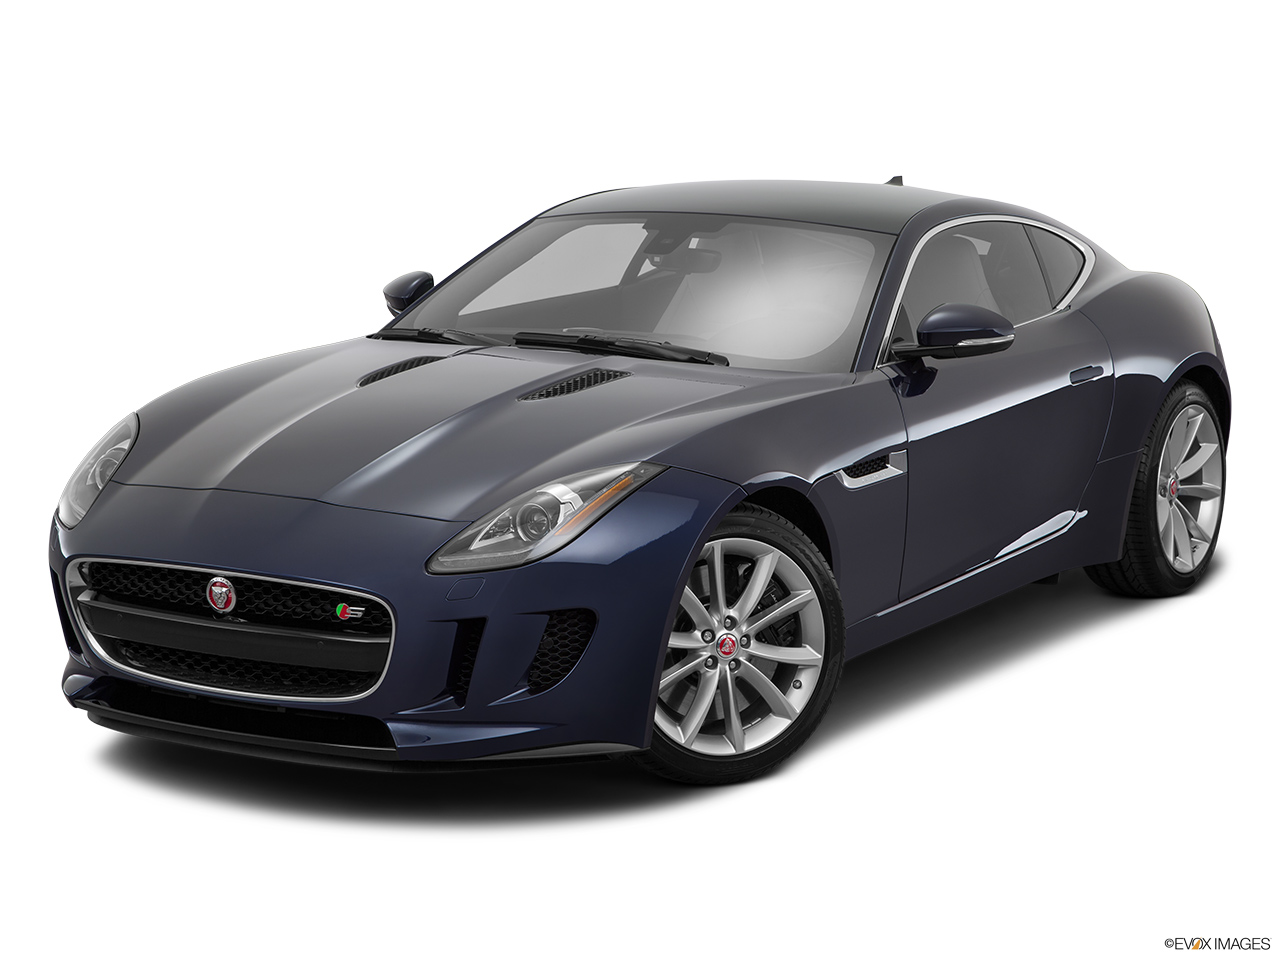 Jaguar F Type Coupe 2016 V6 S, United Arab Emirates, Front Angle View